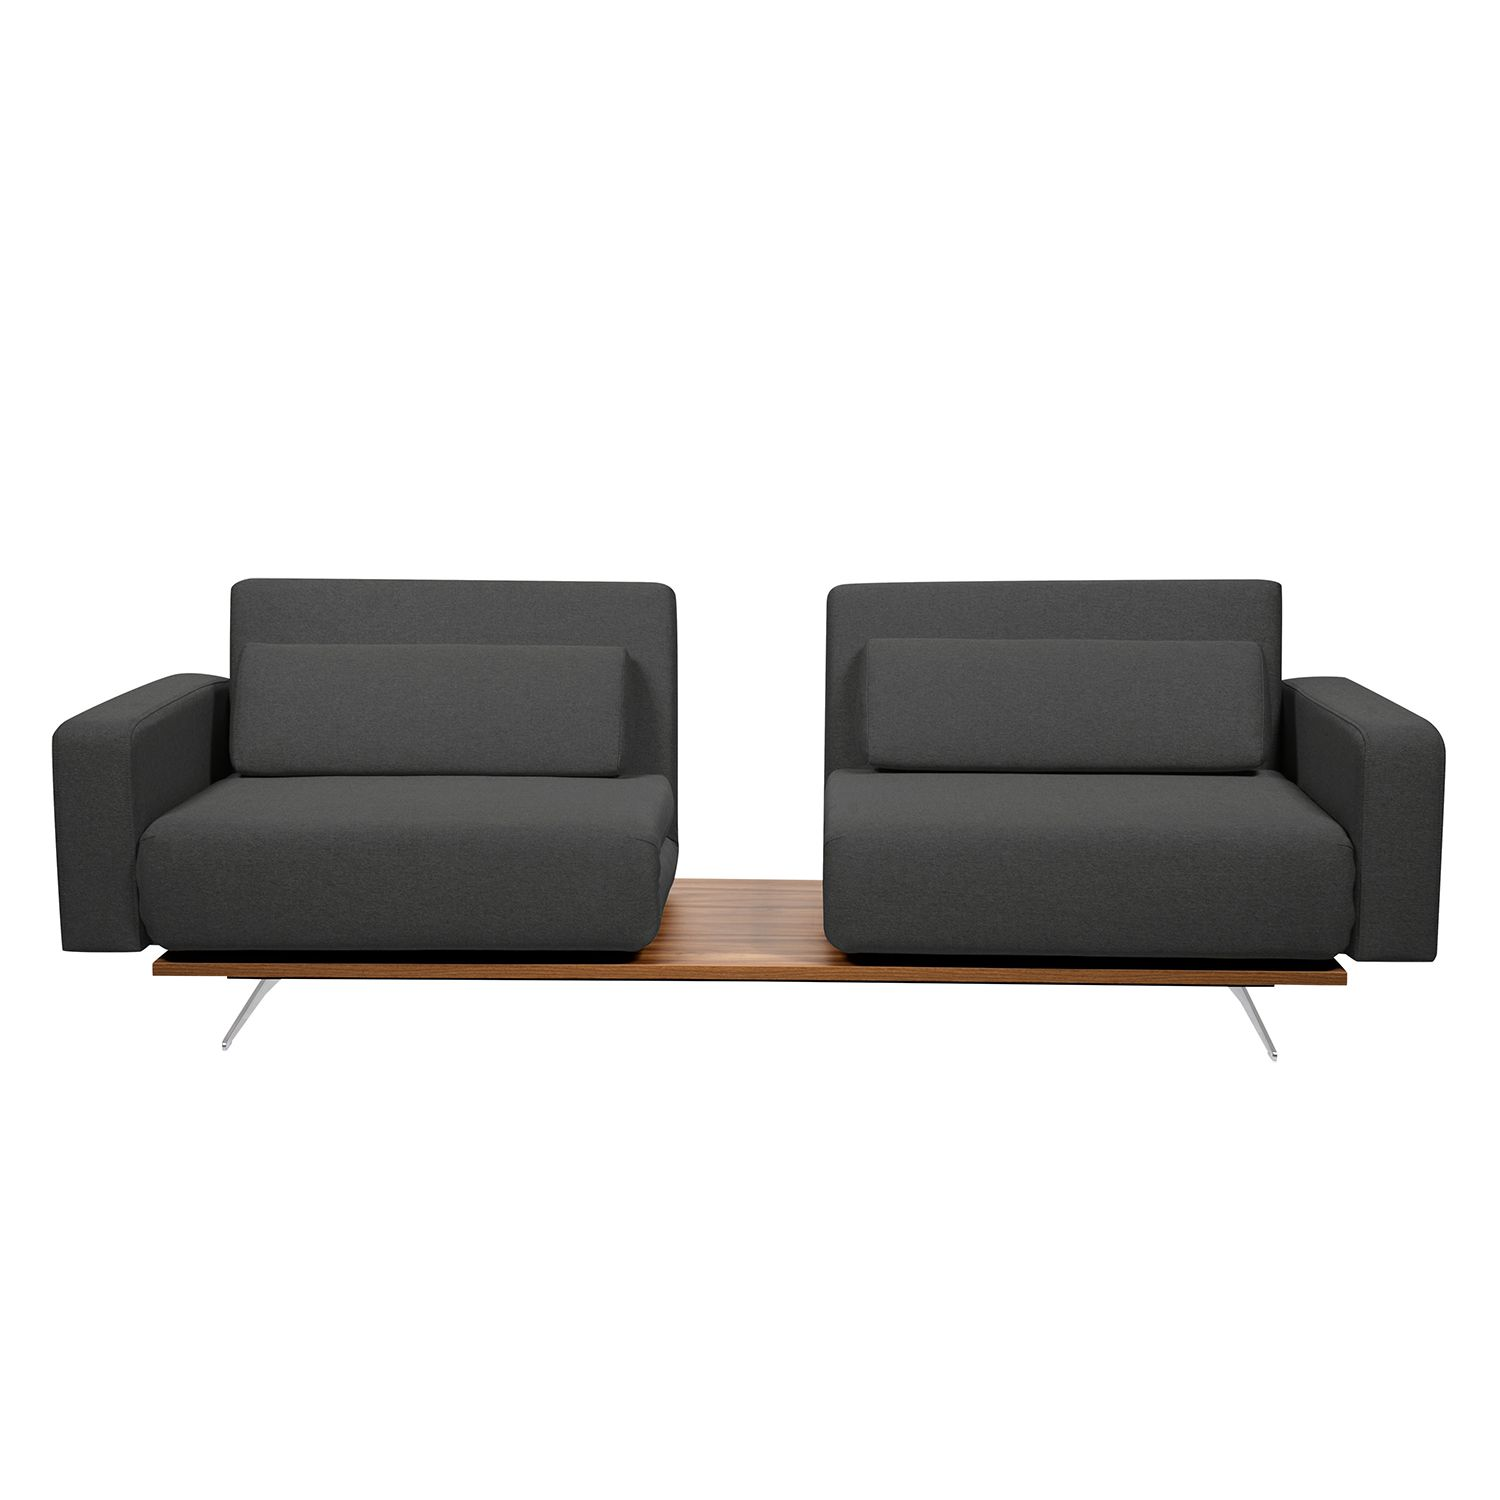 Schlafsofa Copperfield schlafsofa copperfield ii webstoff home24